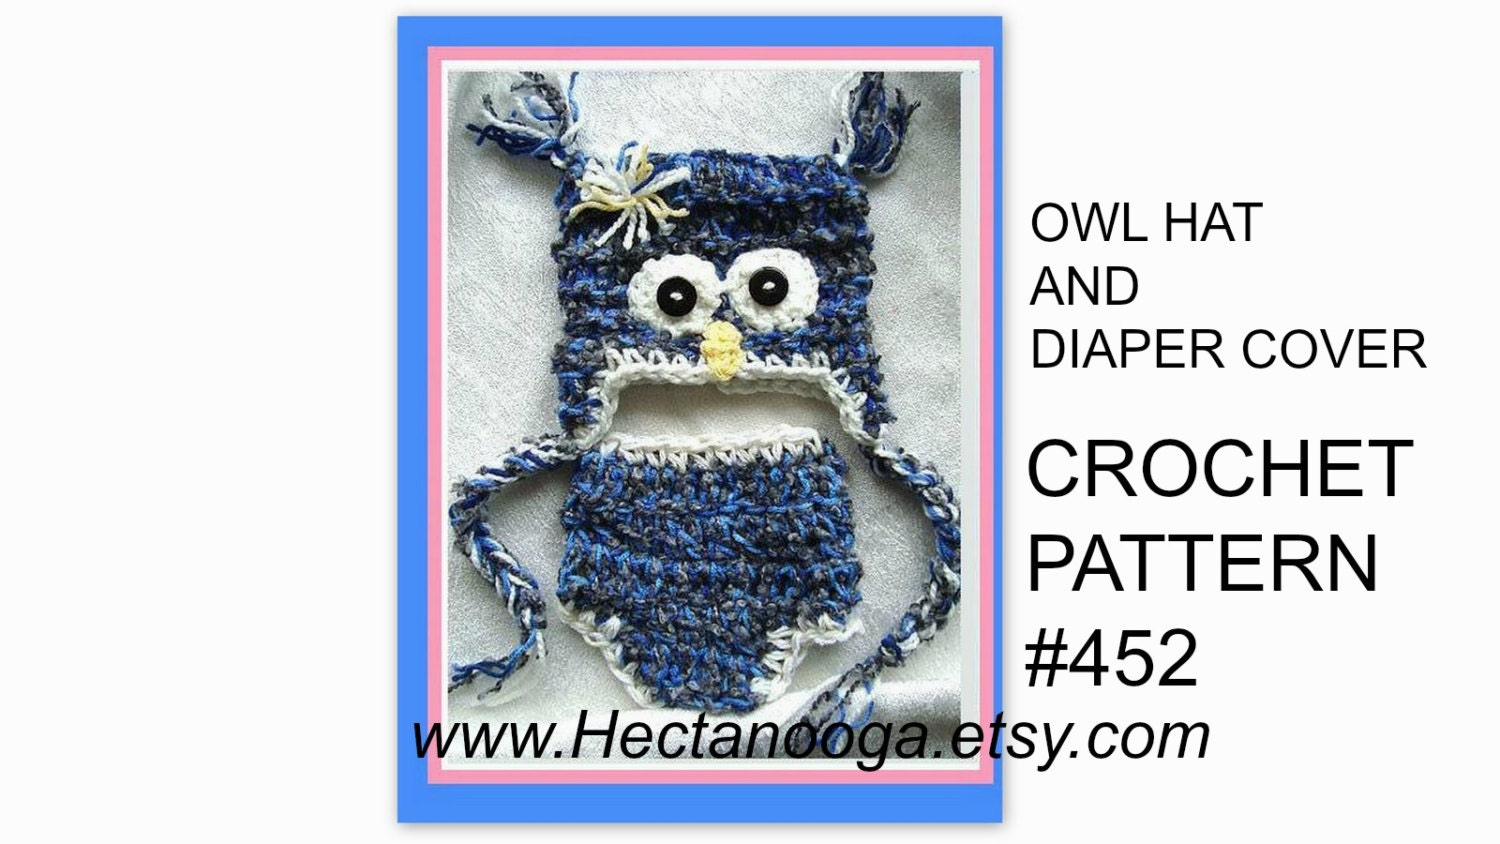 Free Crochet Owl Hat And Diaper Cover Pattern : CROCHET PATTERN baby hat and diaper cover owl num. 452